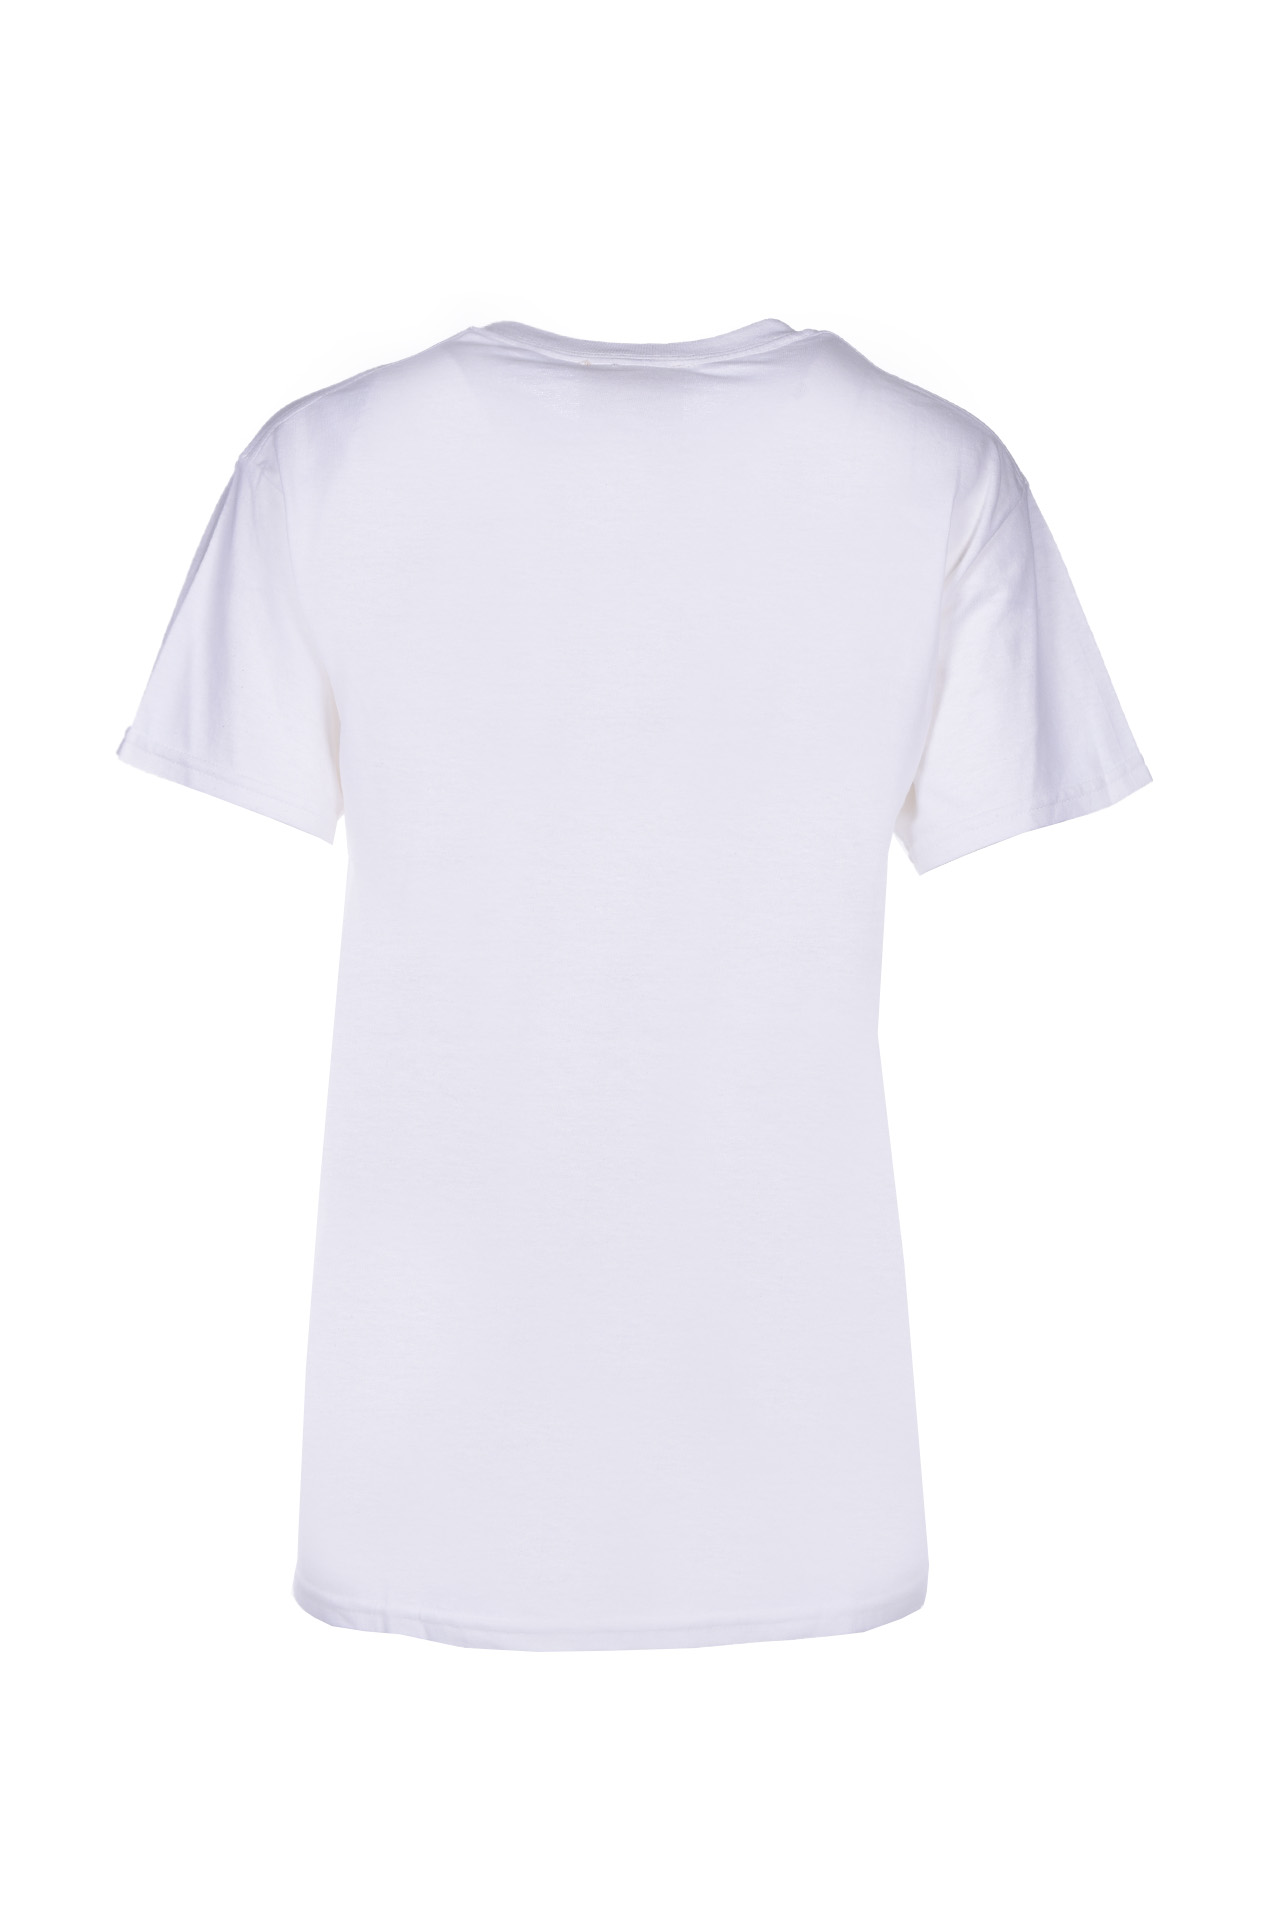 elora Printed cotton T-shirt - white SEMICOUTURE | T-shirts | Y0SJ42A01-0